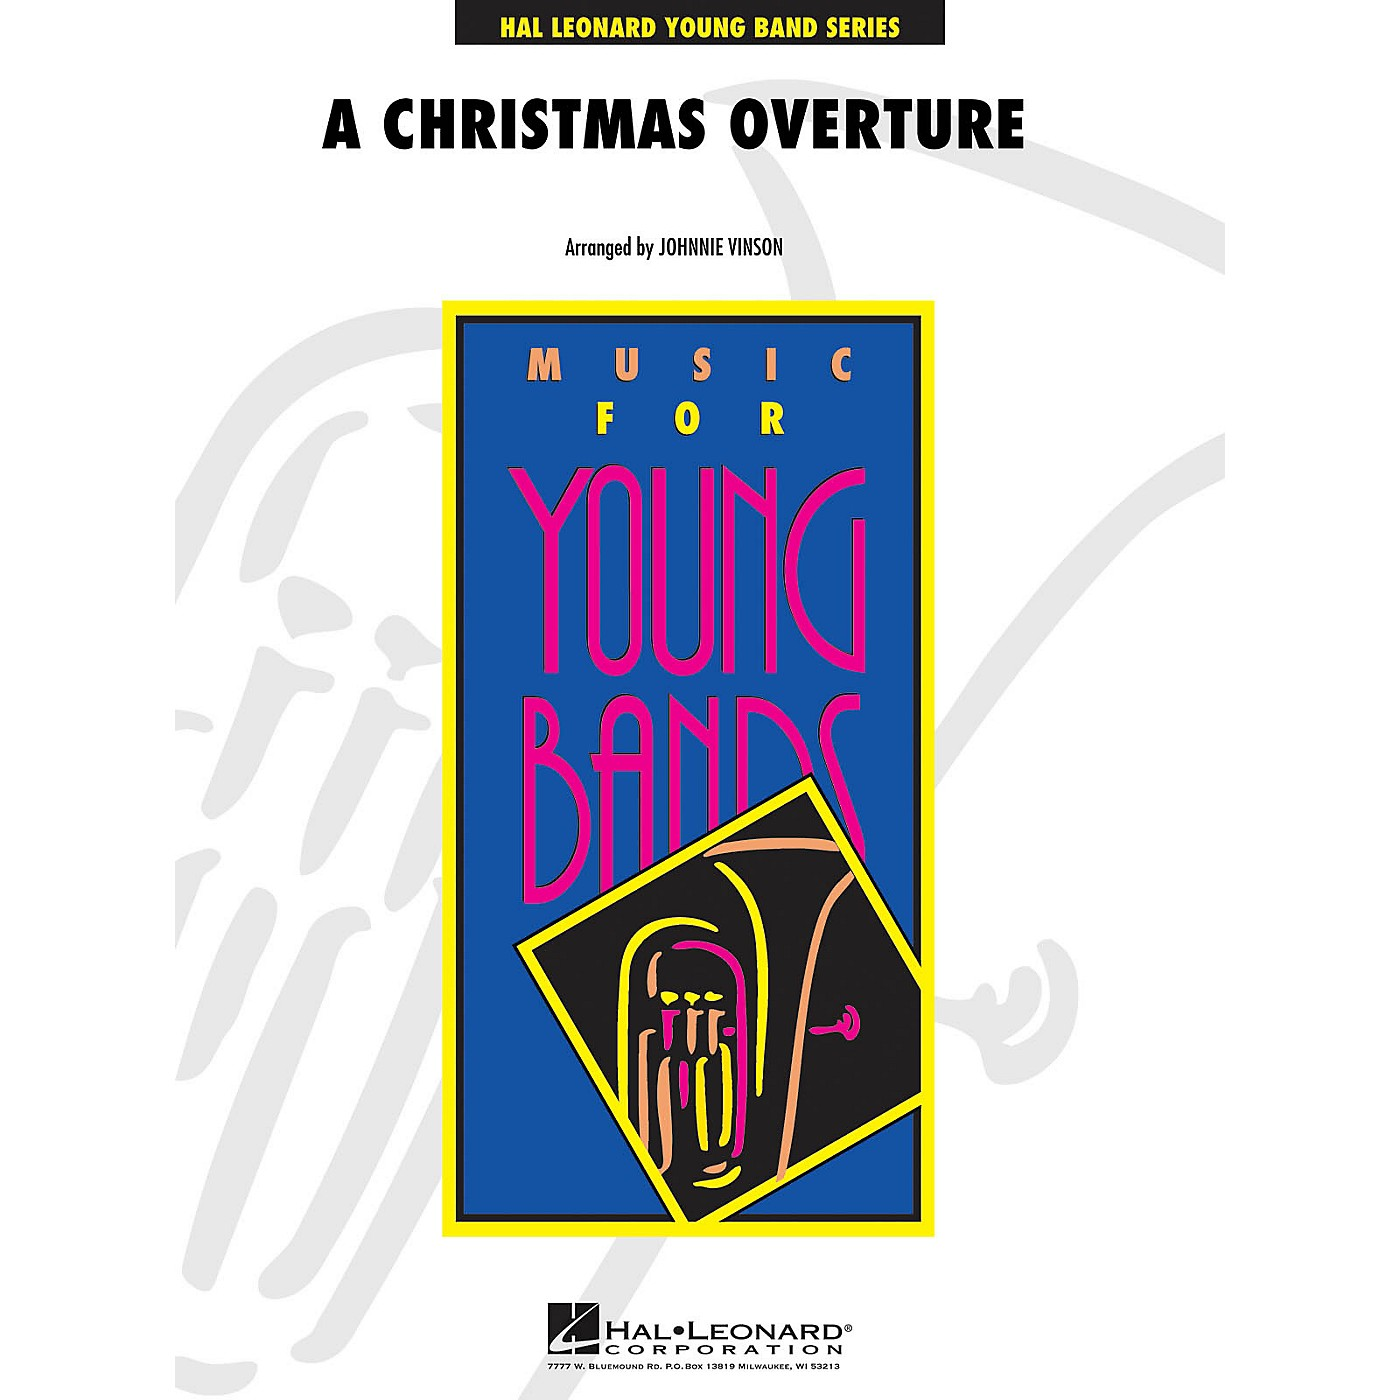 Hal Leonard Christmas Overture, A - Young Concert Band Level 3 arranged by Johnnie Vinson thumbnail